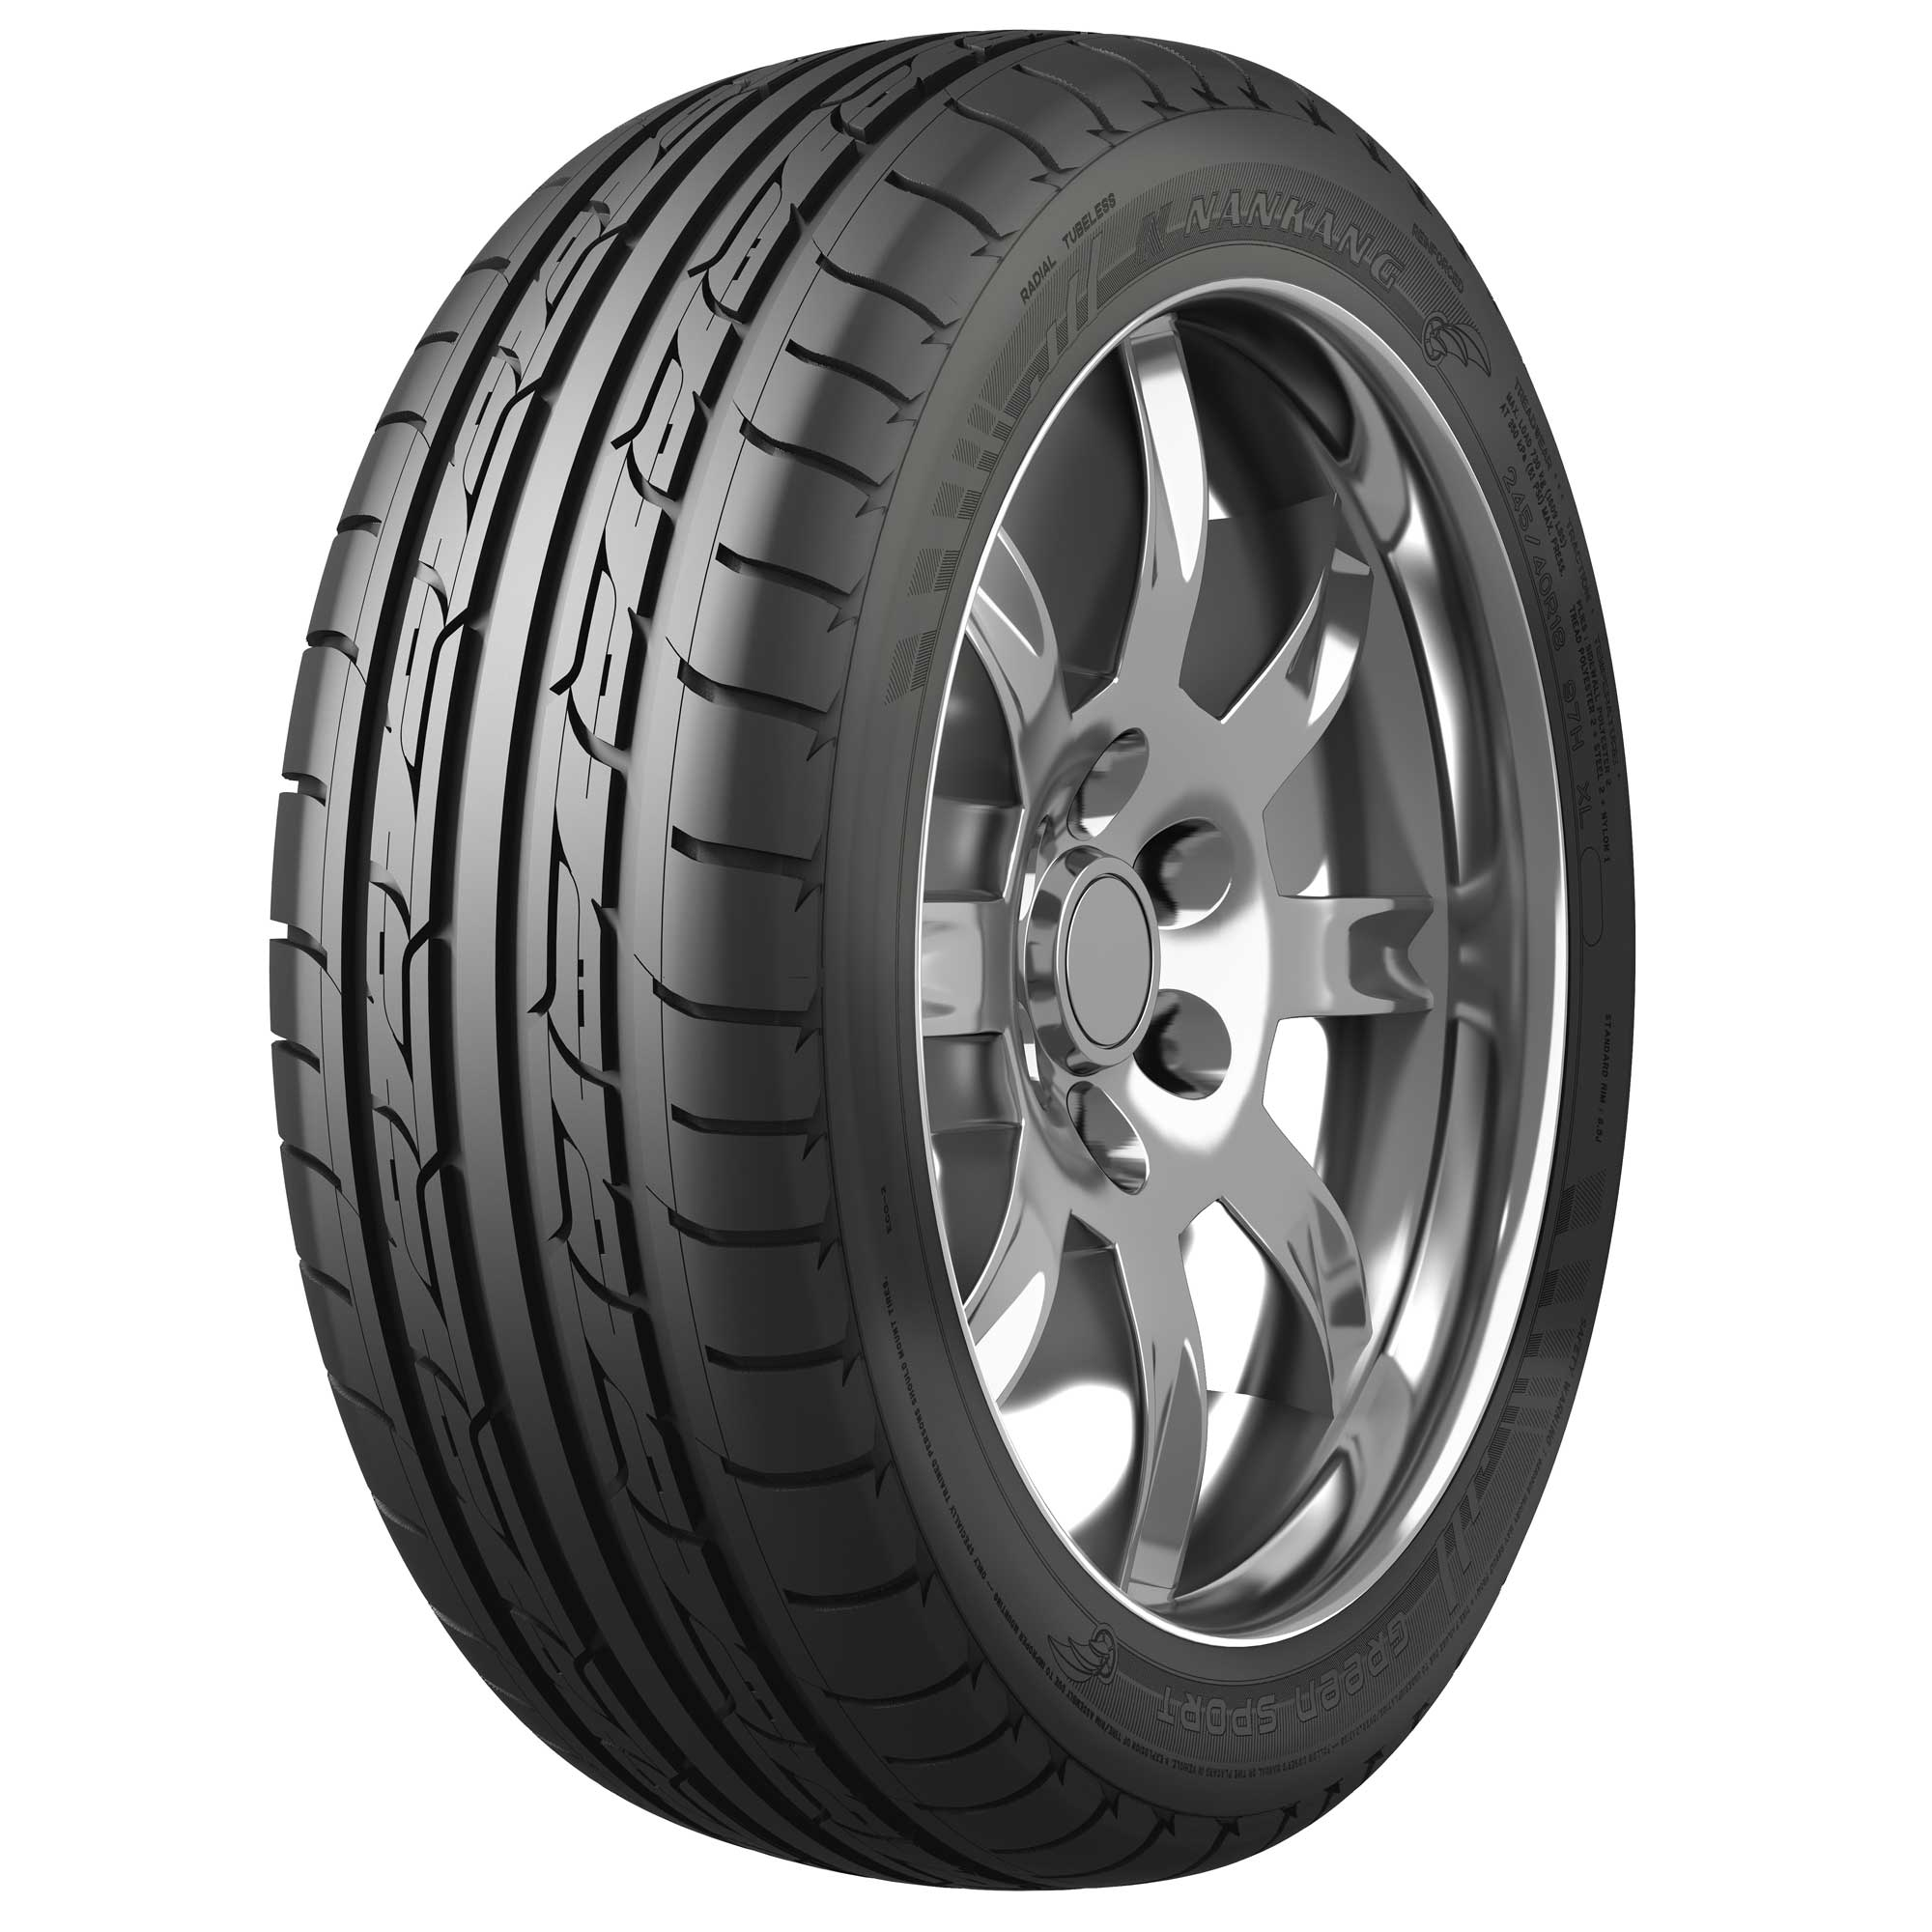 Gomme Nuove Nankang 245/45 ZR19 102Y ECO-2+ XL M+S pneumatici nuovi All Season